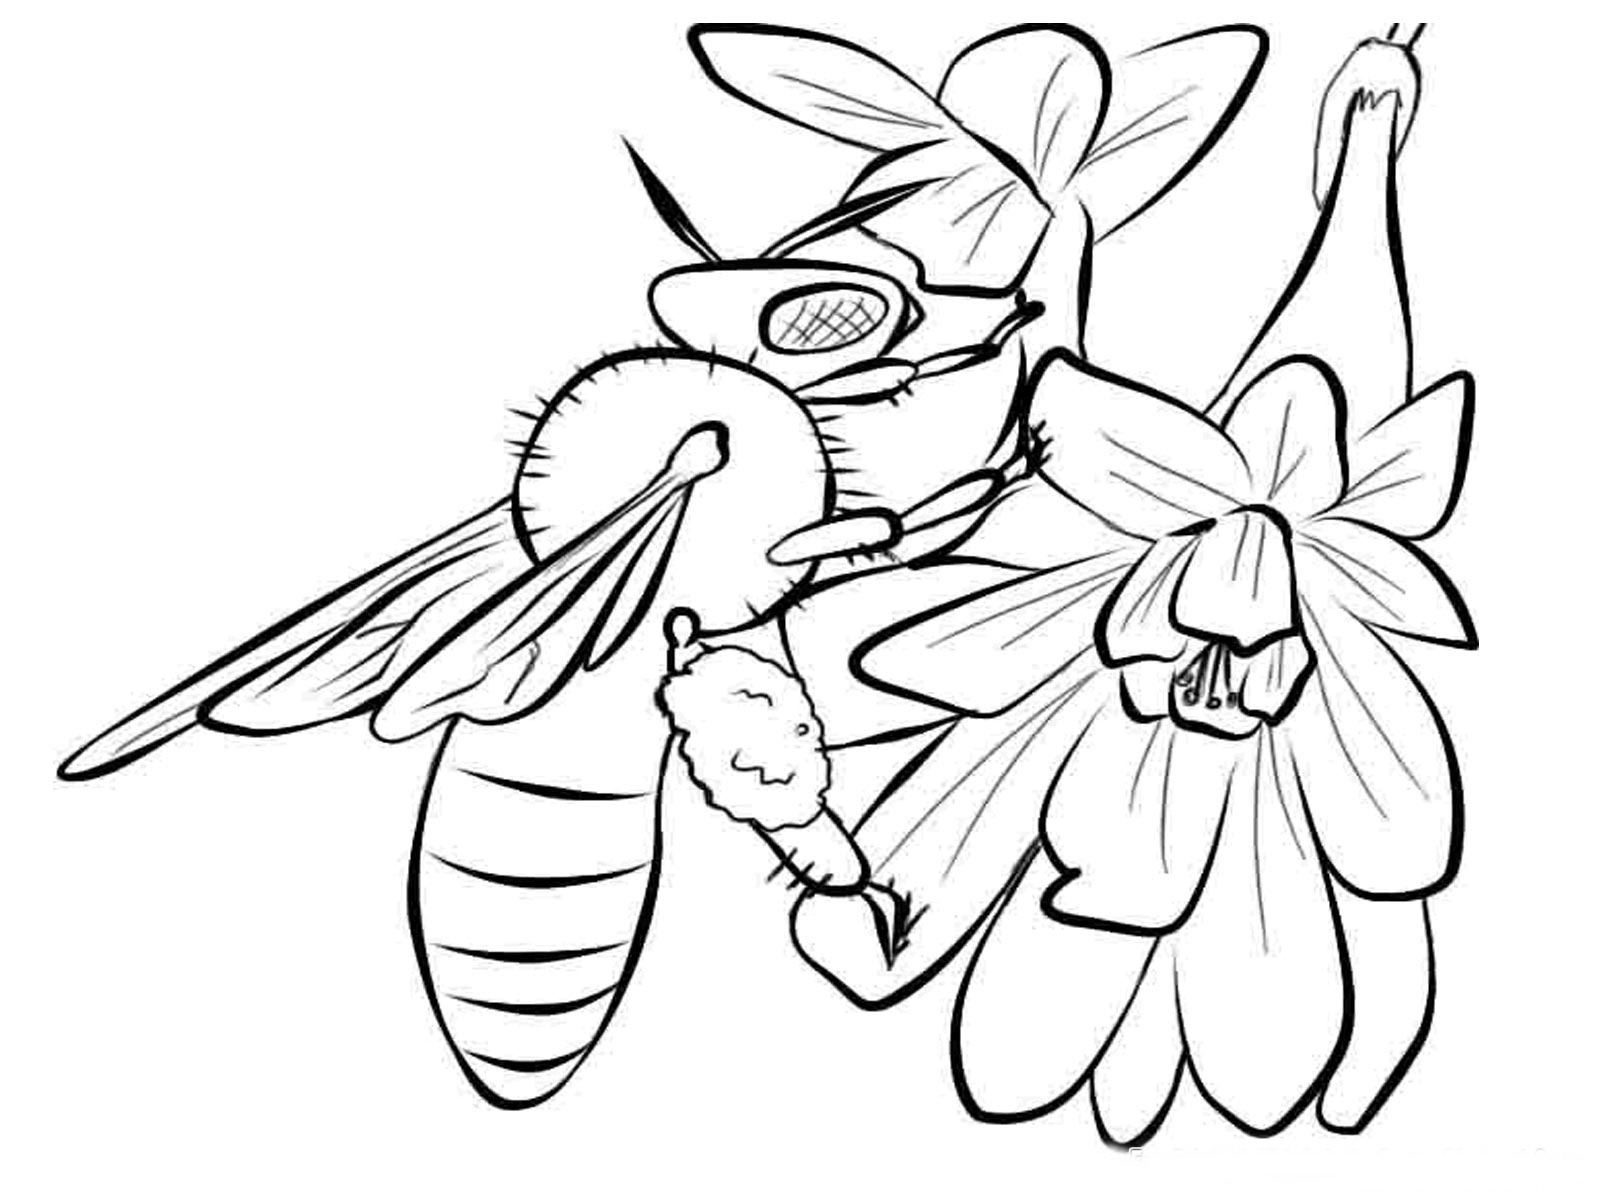 download the busy bees coloring page. jasmine or lavender honeybee ... - Bumble Bee Coloring Pages Kids